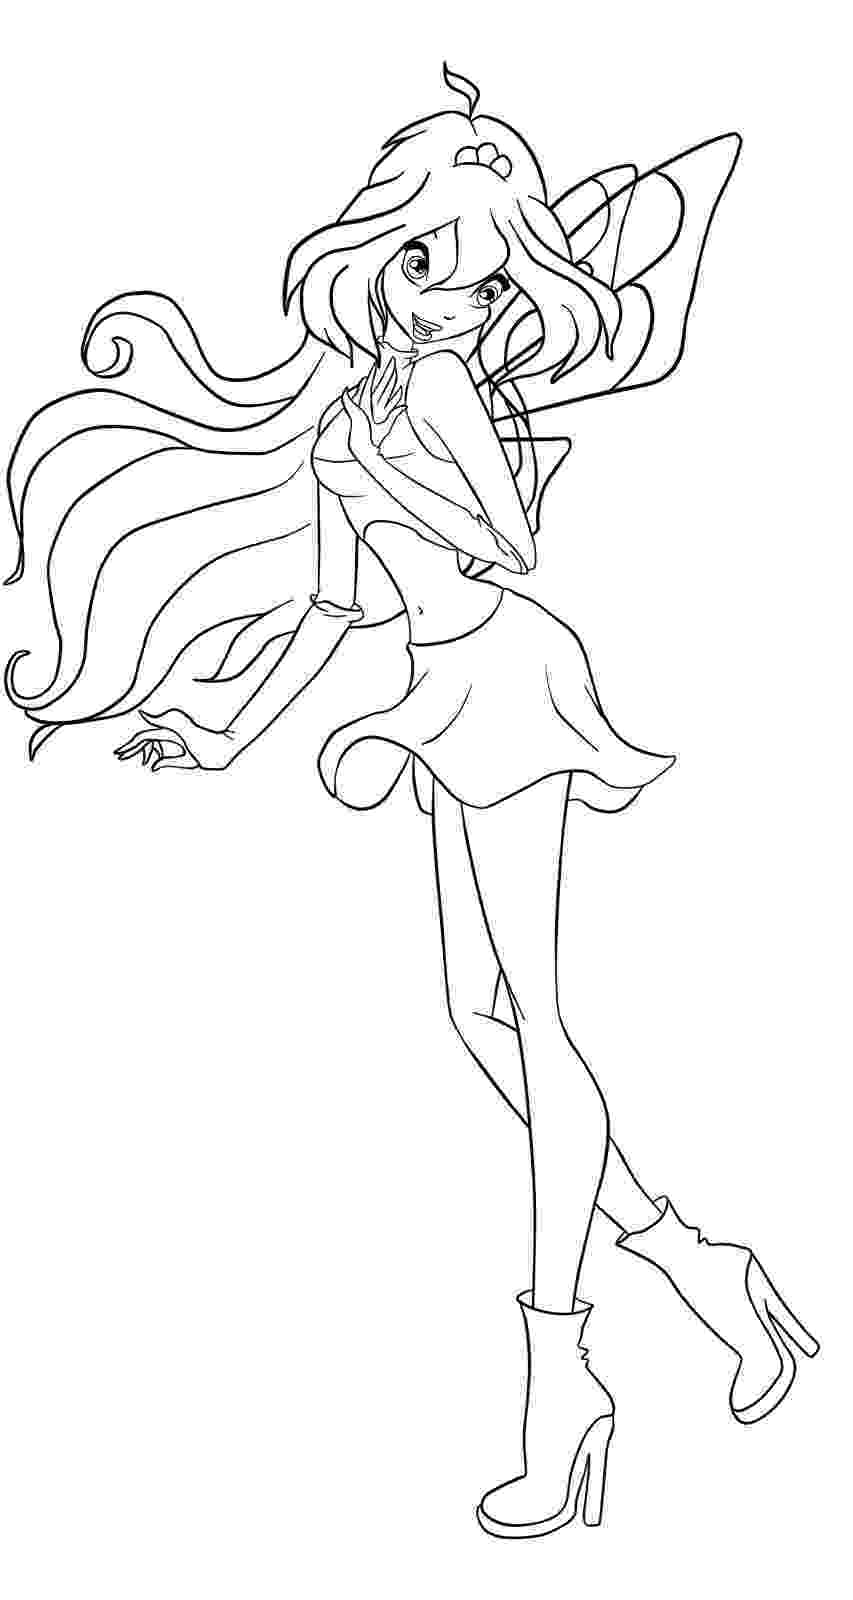 winx bloom coloring pages winx club bloomix coloring pages at getcoloringscom coloring pages winx bloom